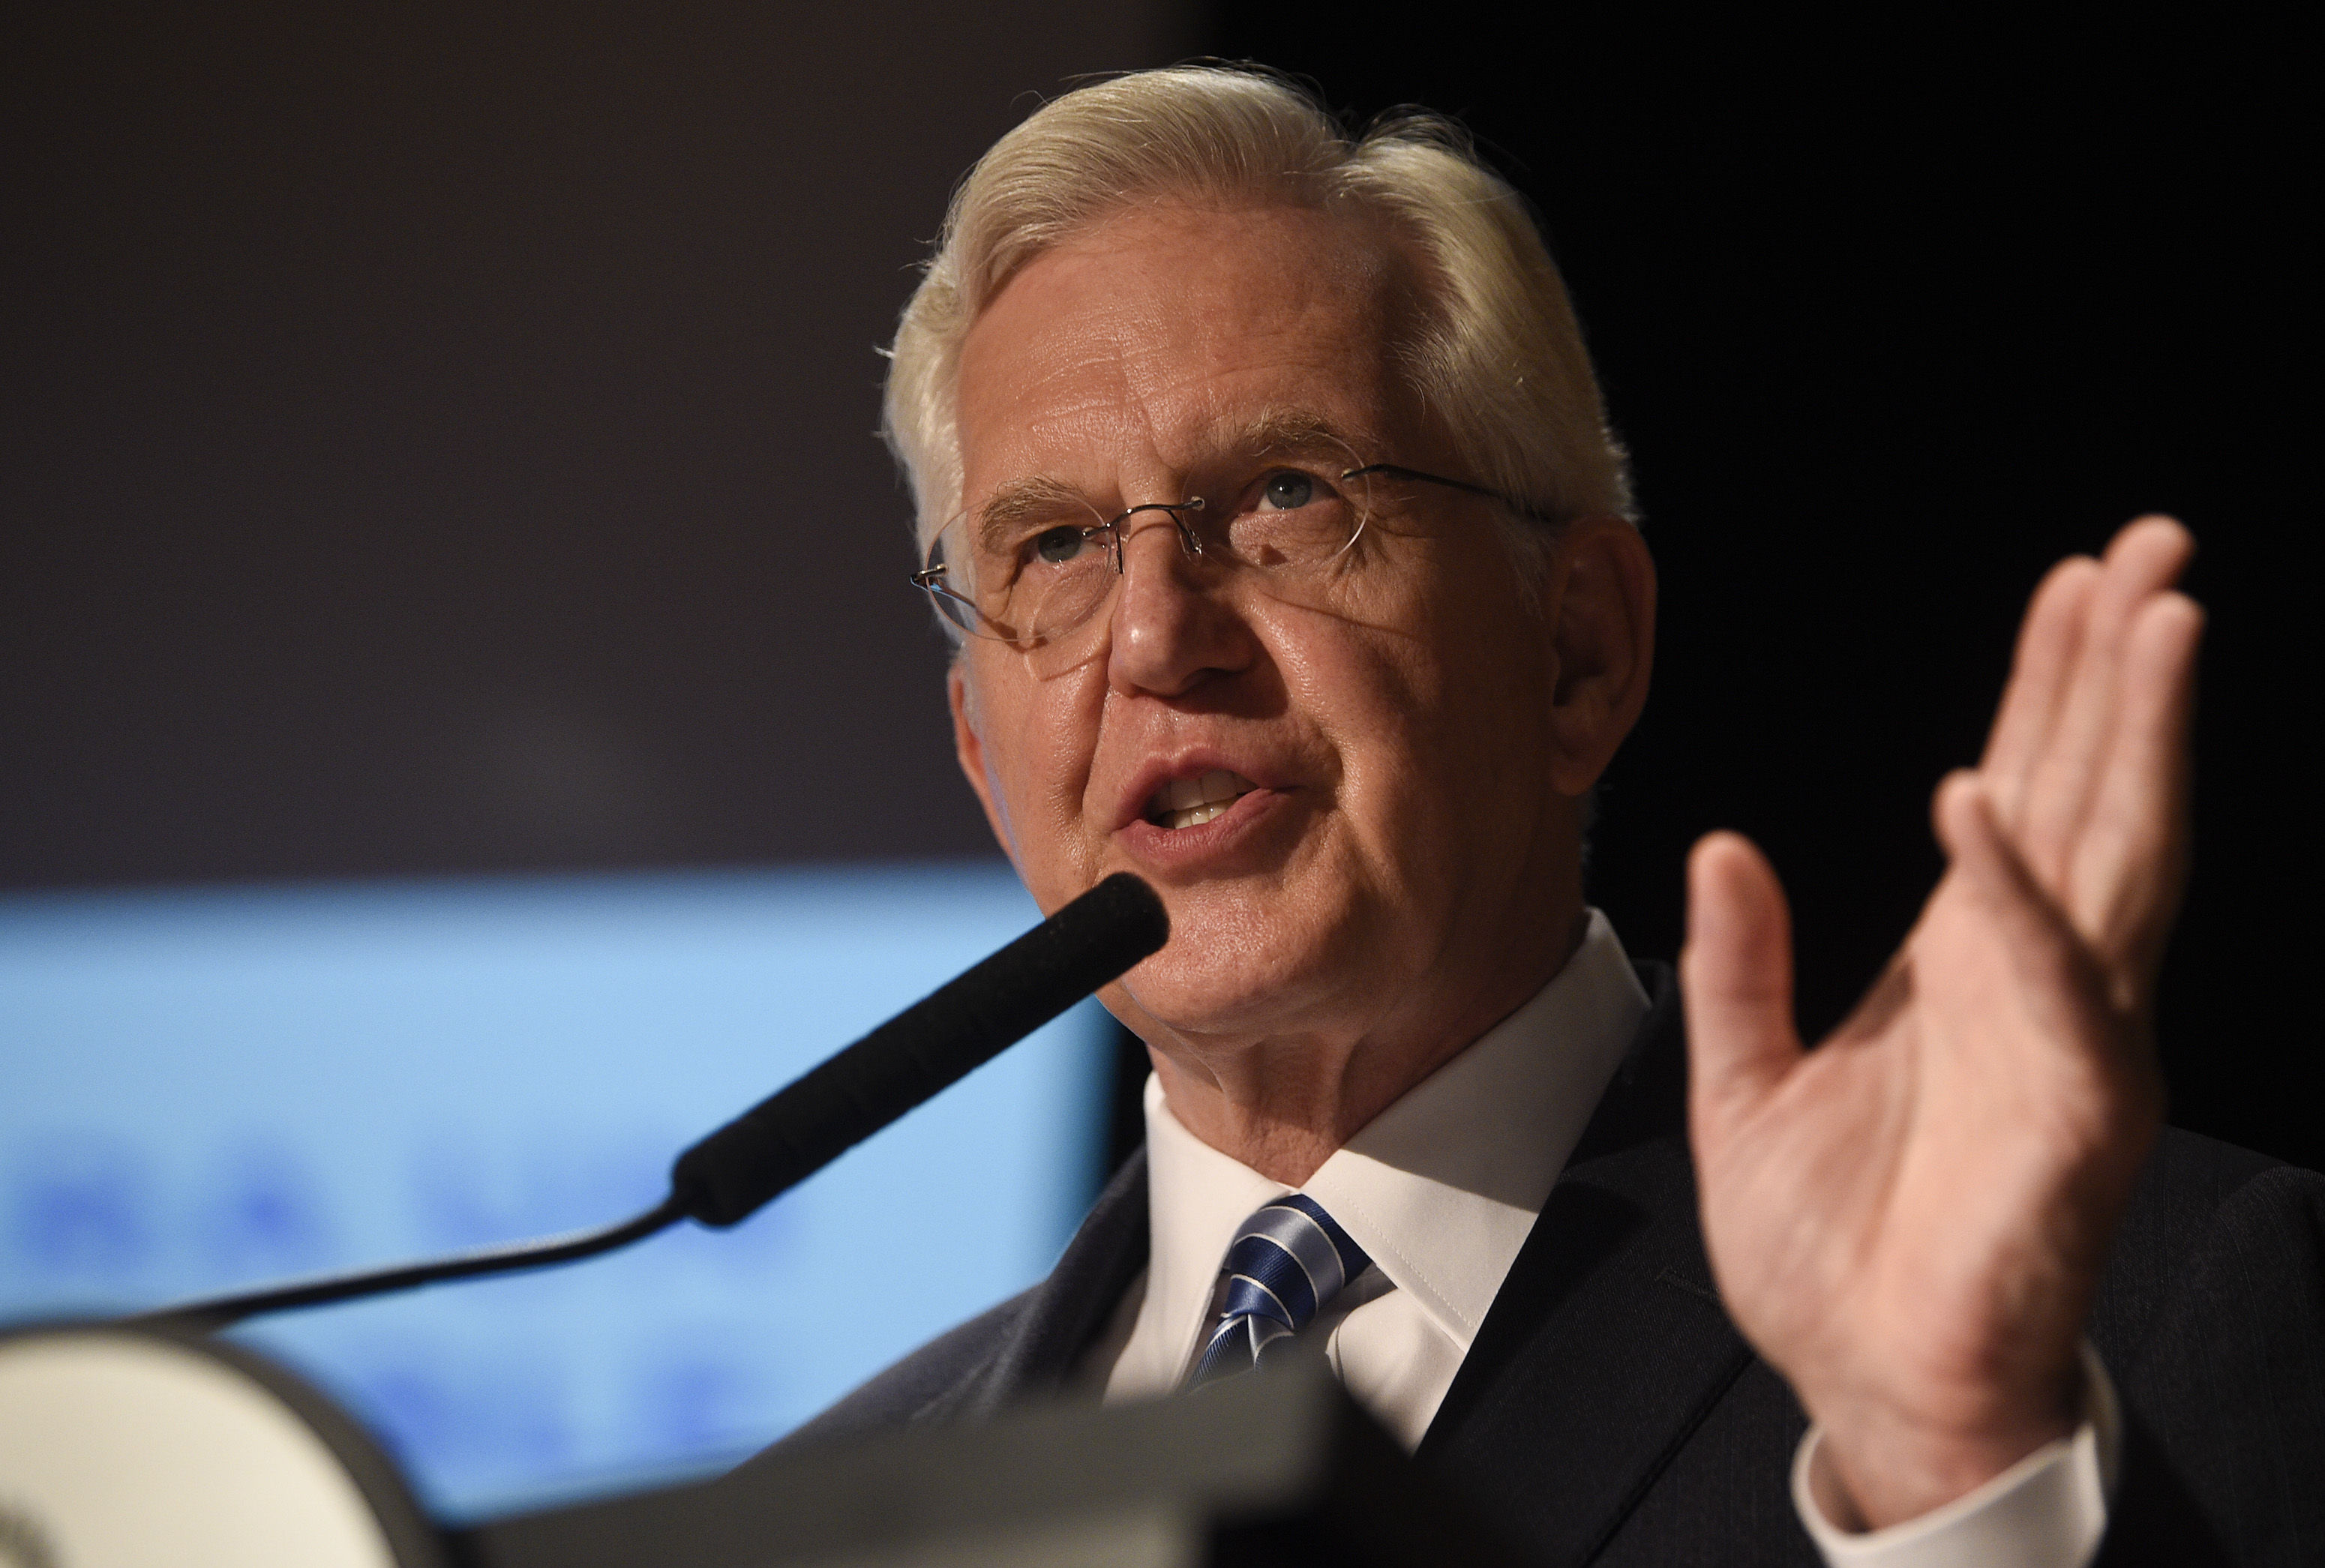 Elder D. Todd Christofferson member of Twelve Apostles of The Church of Jesus Christ of Latter-day Saints talks at the G20 Interfaith Forum in Buenos Aires, Argentina, Sunday, Sep 26, 2018. (AP Photo/Gustavo Garello)